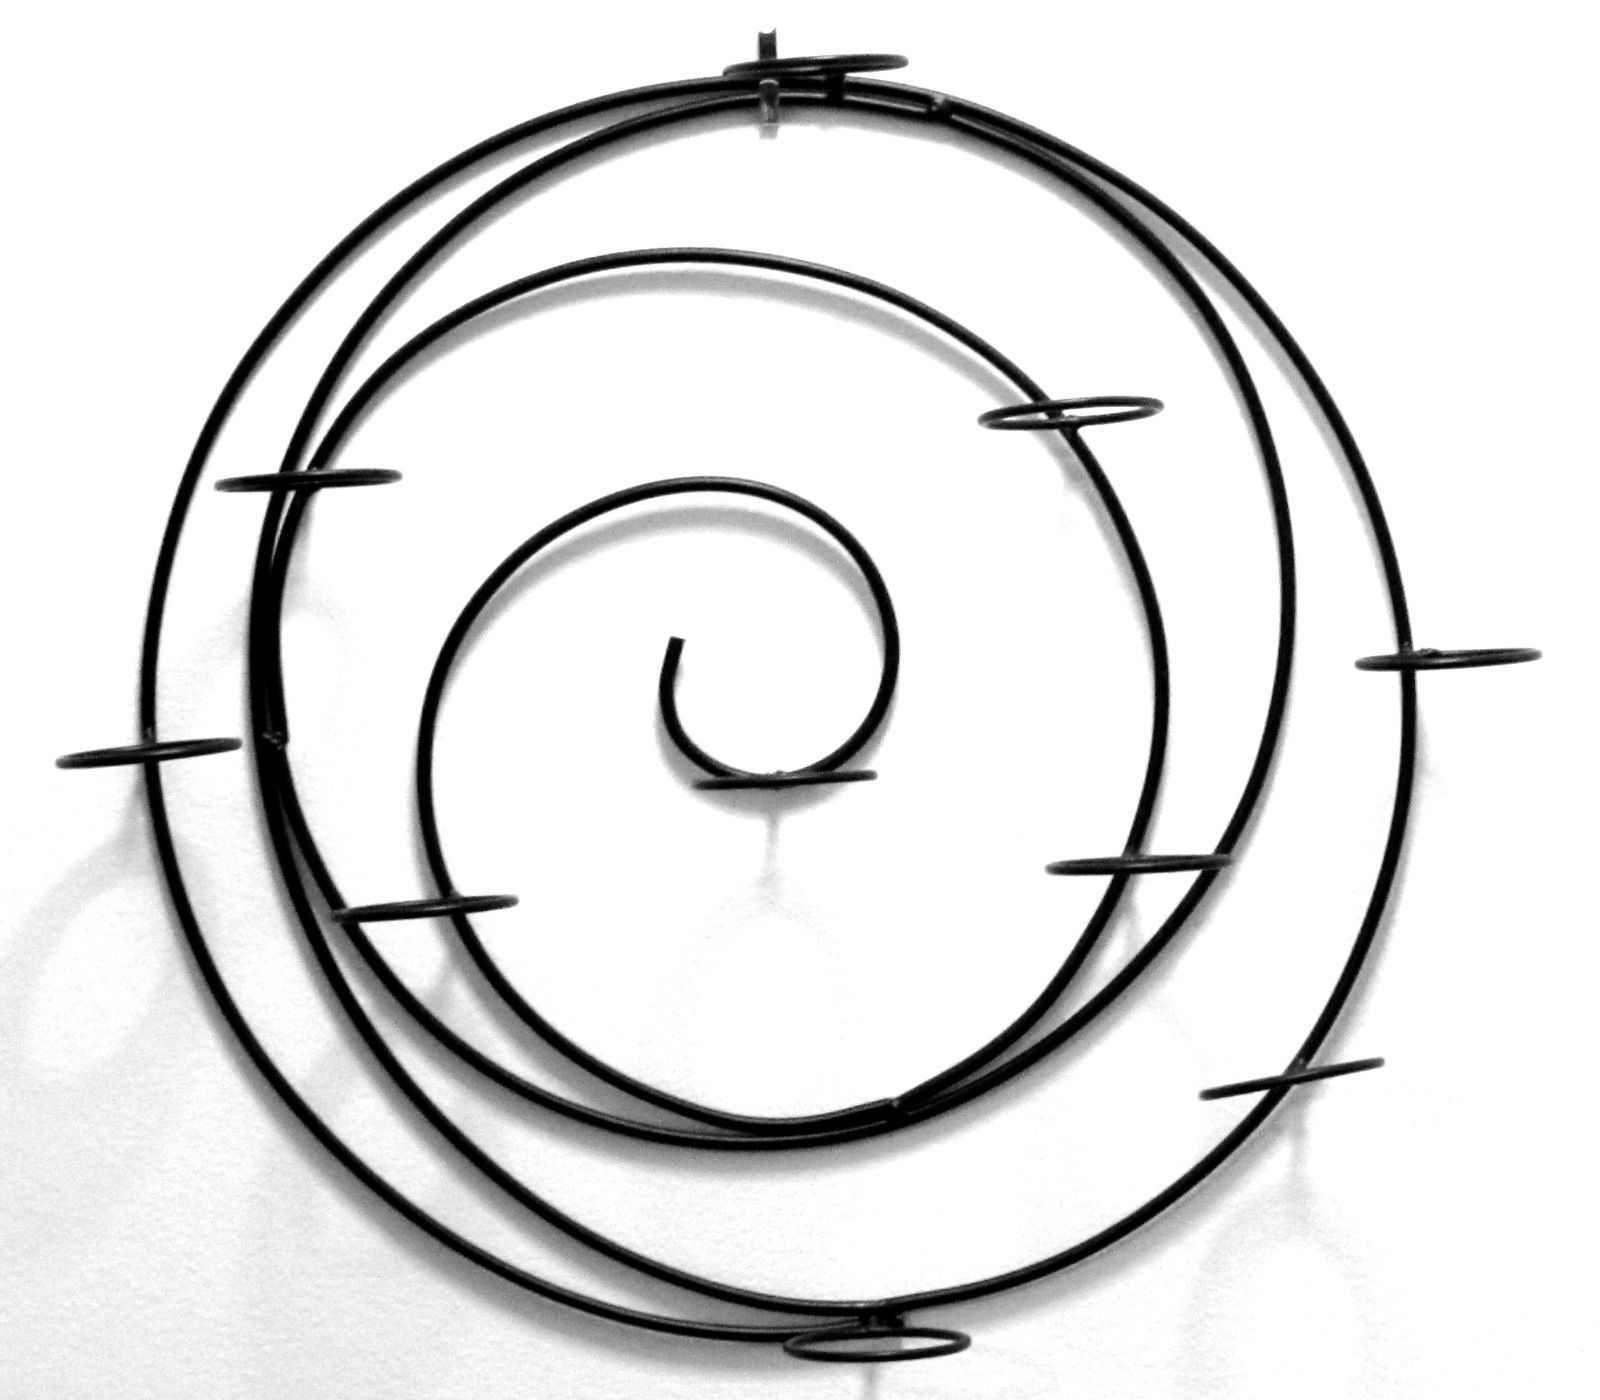 Metal Spiral Wall Tea Light Candleholder Wall Sconce Black Finish